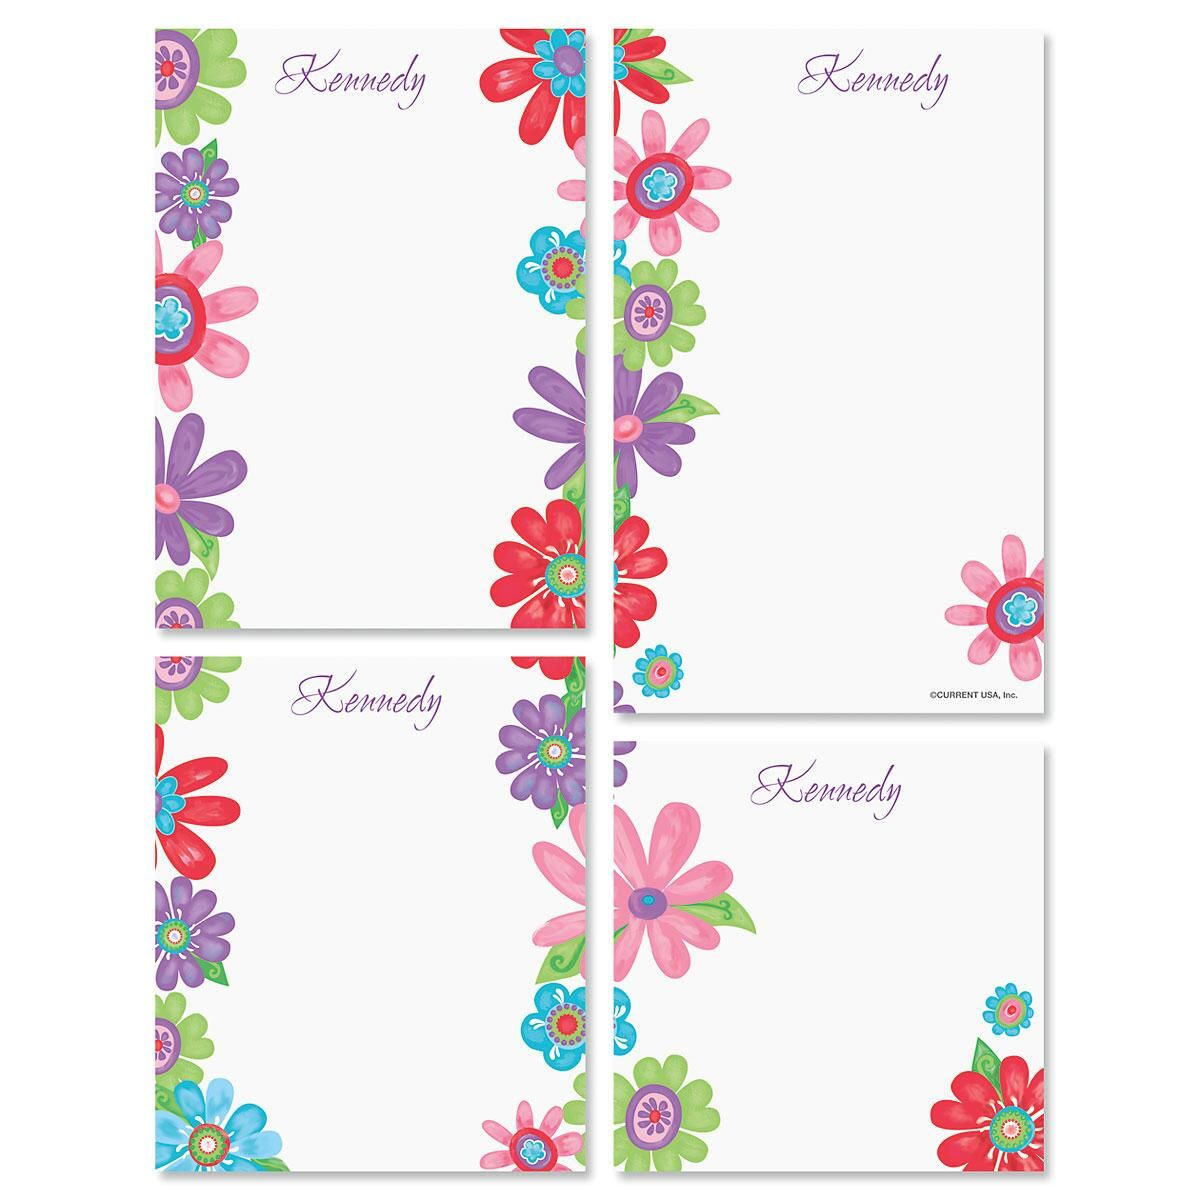 Blossom Memo Pad Sets Colorful Images